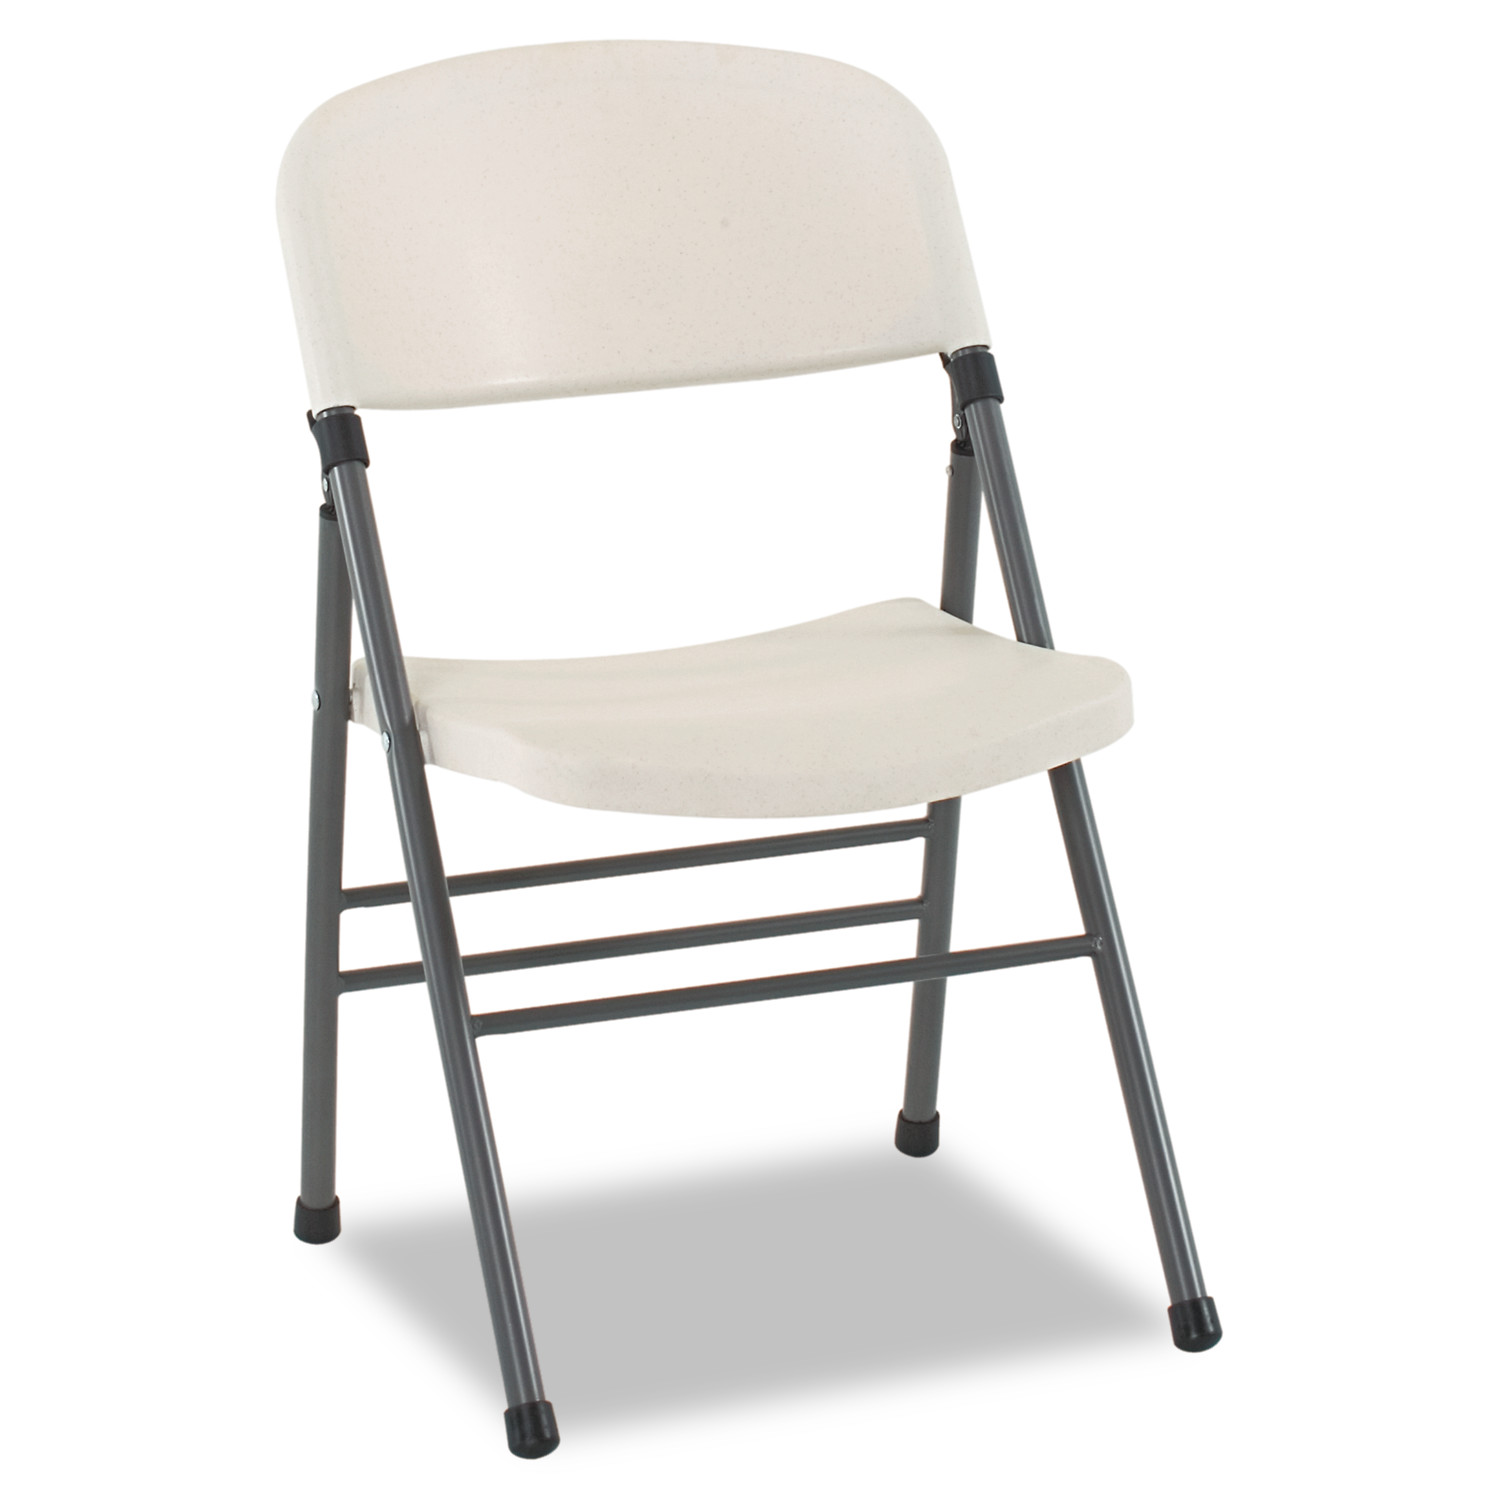 Bridgeport Endura Molded Folding Chair, Pewter Frame White Speckle by Cosco